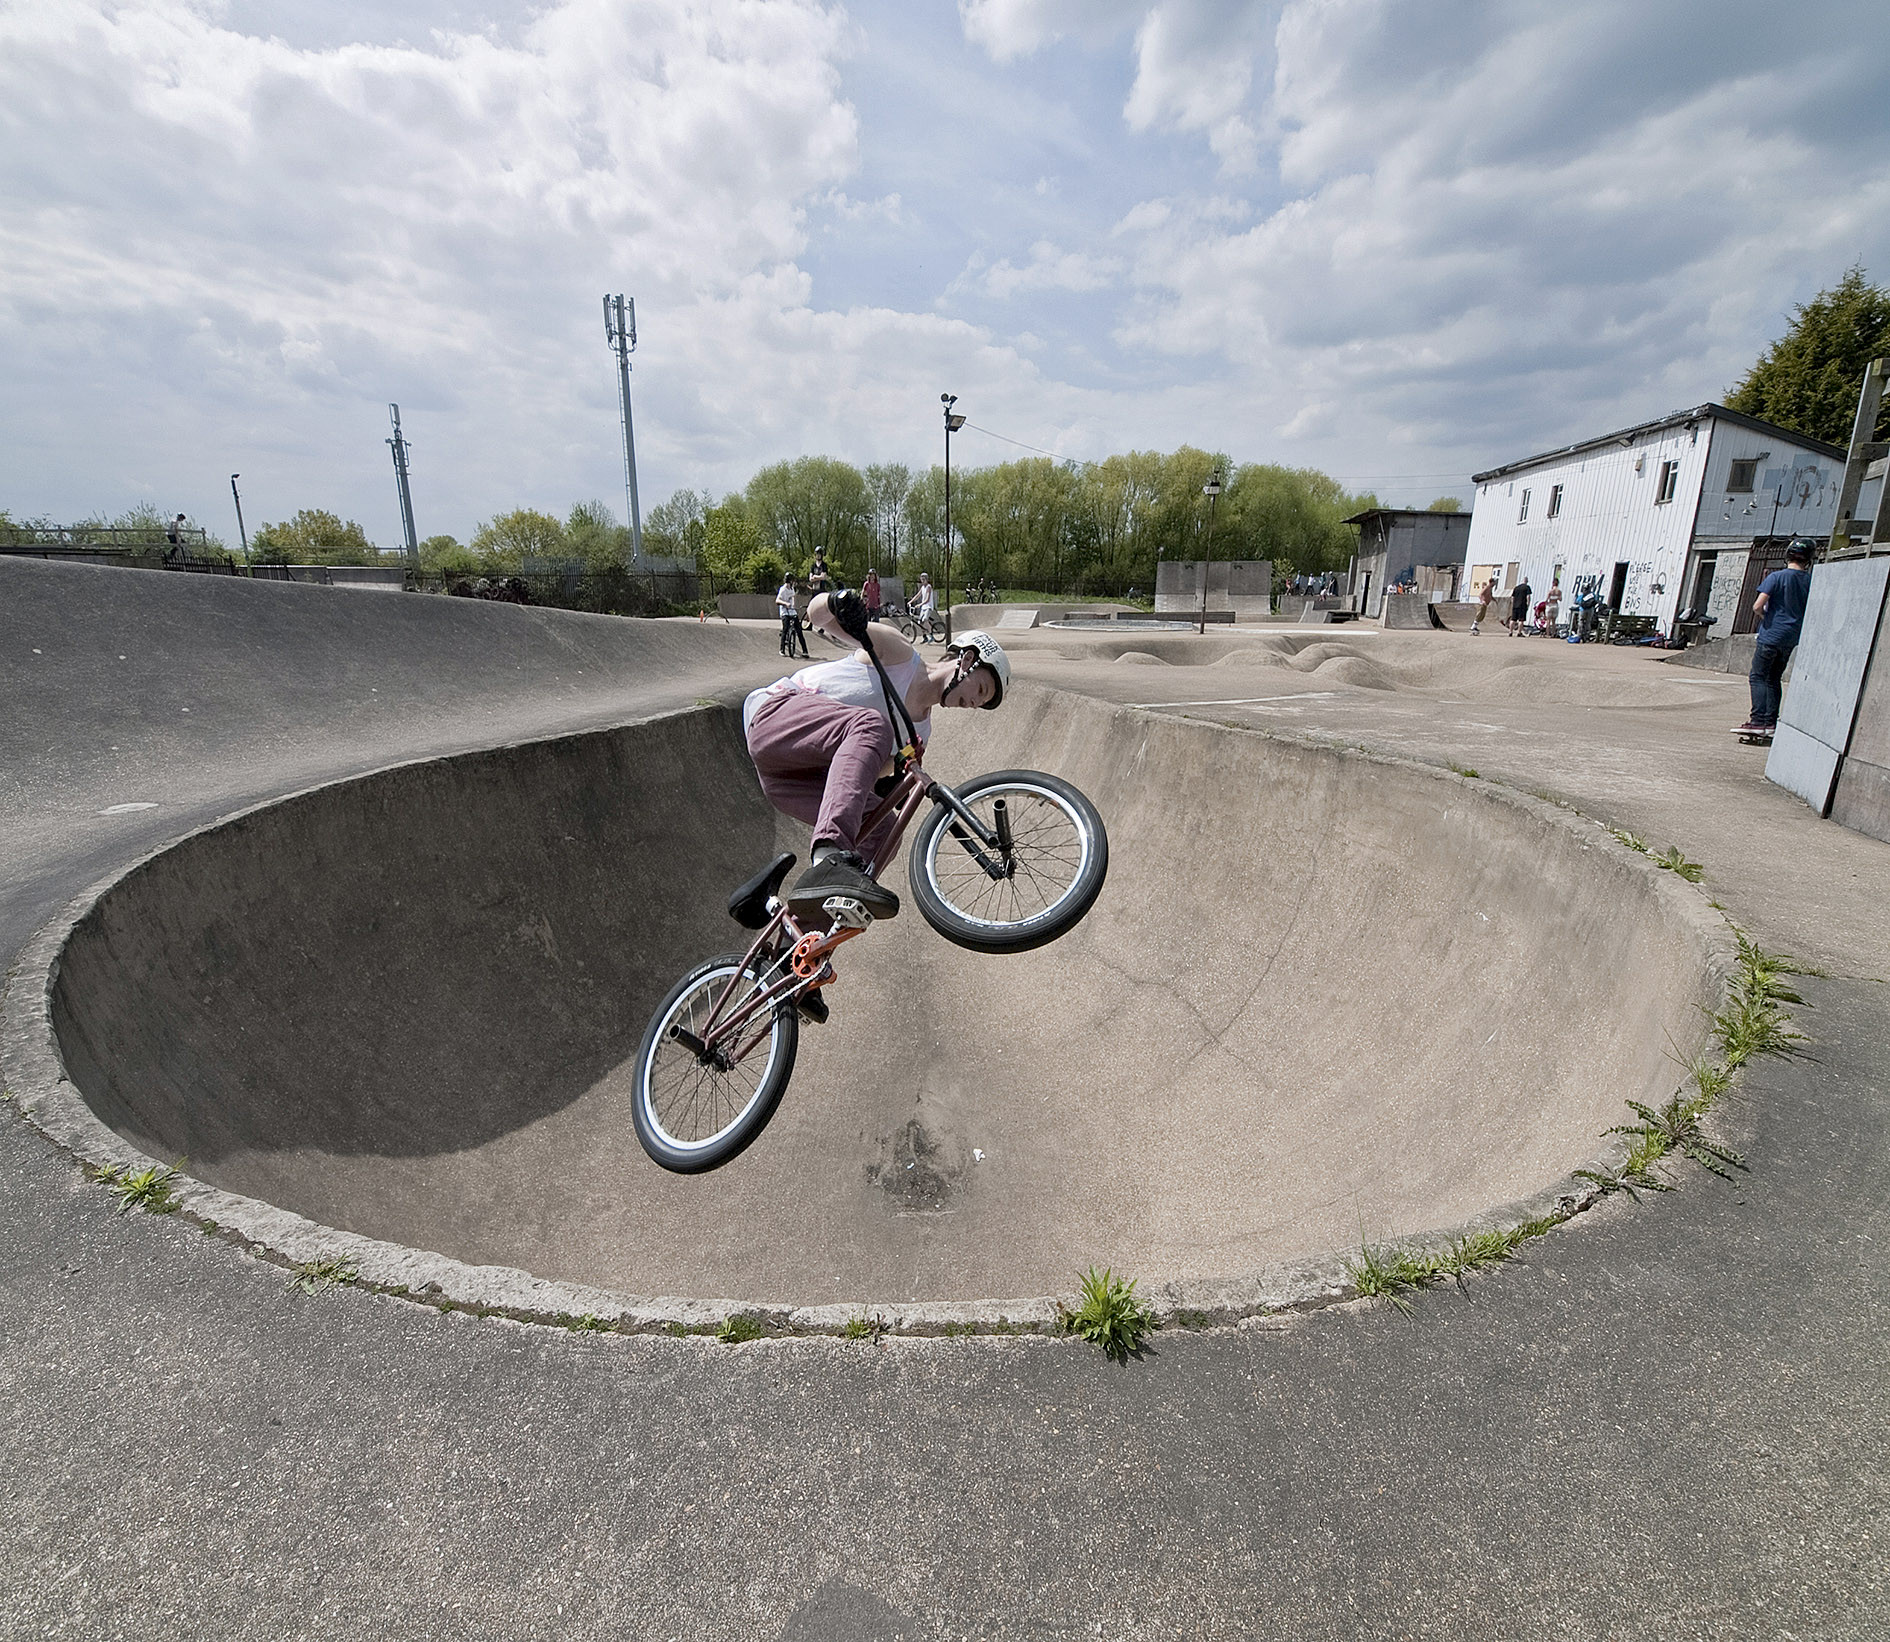 'The Rom' Becomes Europe's First Listed Skatepark, © Played in Britain